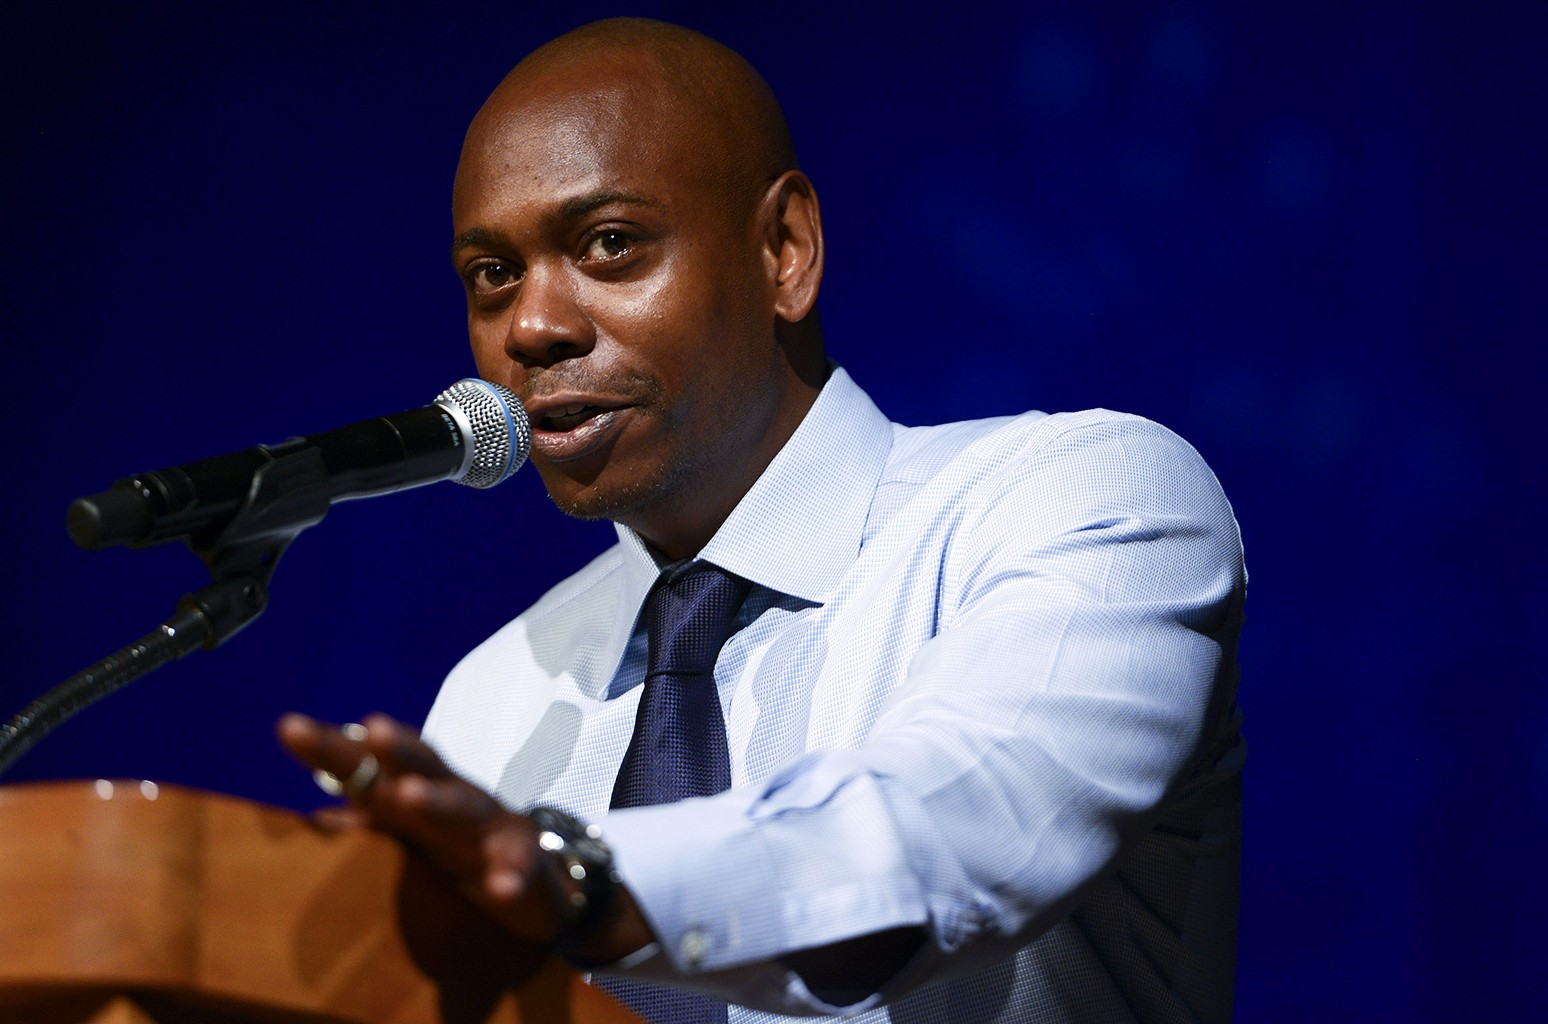 Dave Chappelle speaks on June 14, 2015 in Washington, DC.